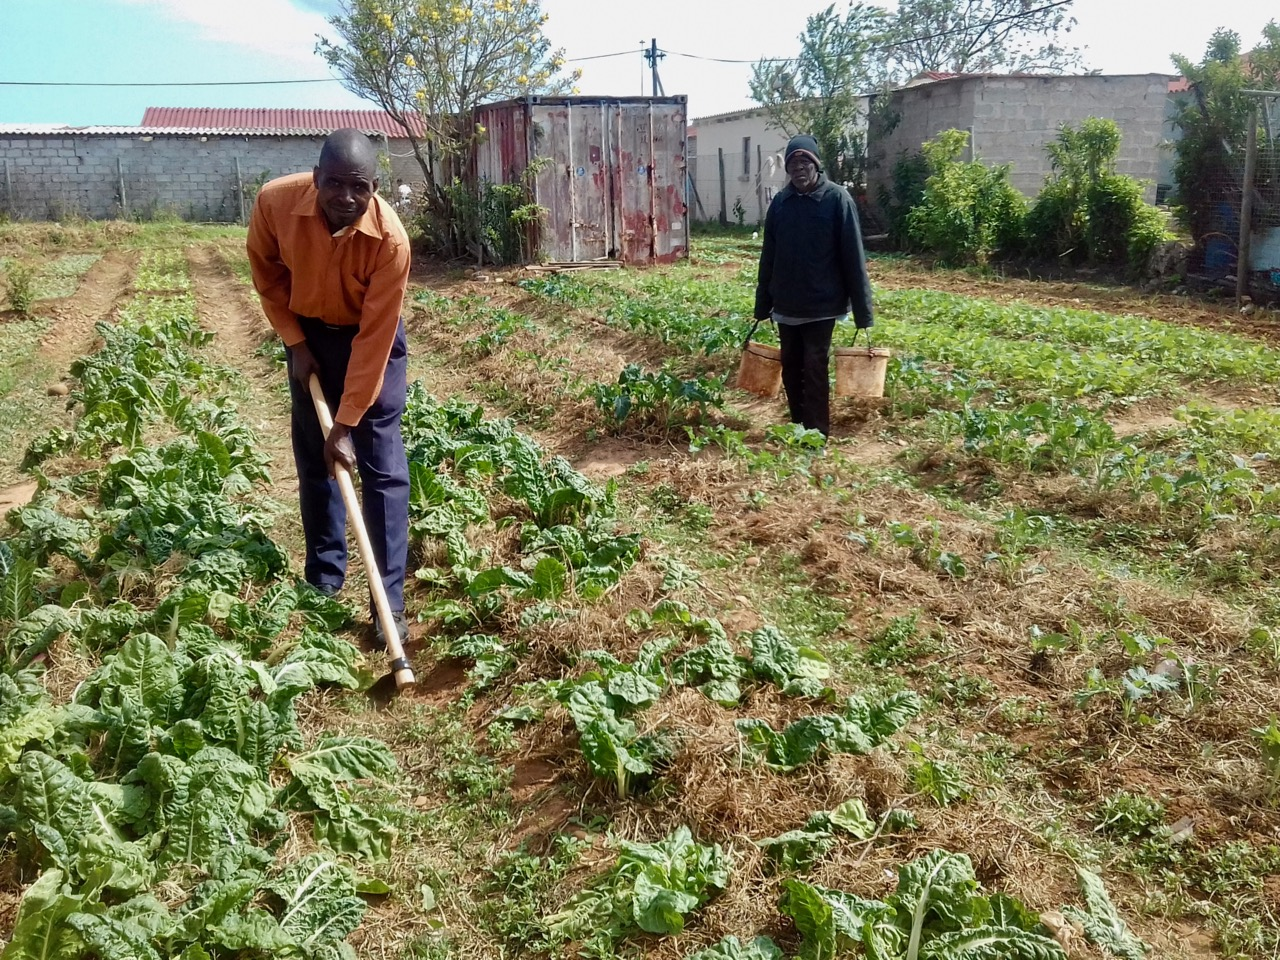 backyard veggie gardens put food on the table groundup